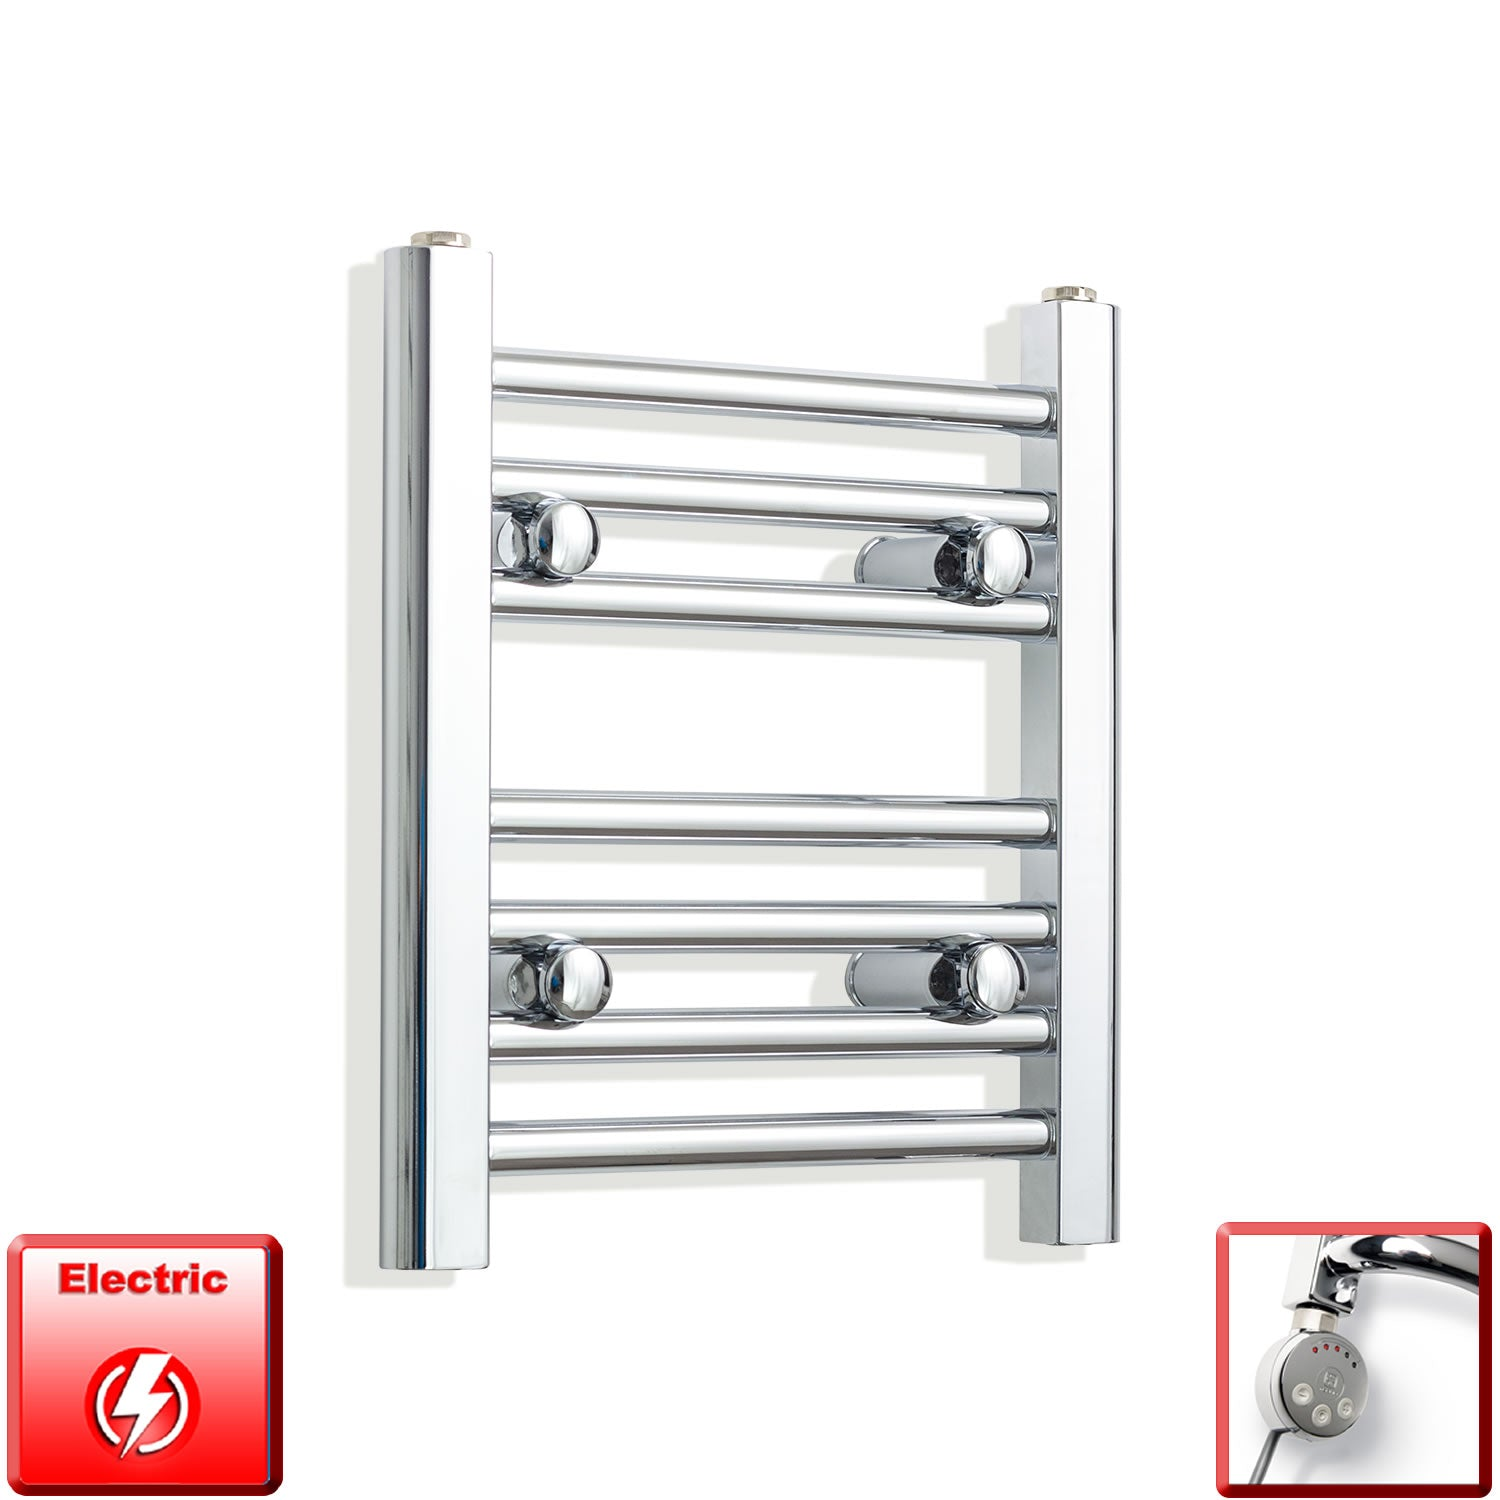 350mm Wide 400mm High Pre-Filled Chrome Electric Towel Rail Radiator With Thermostatic MEG Element